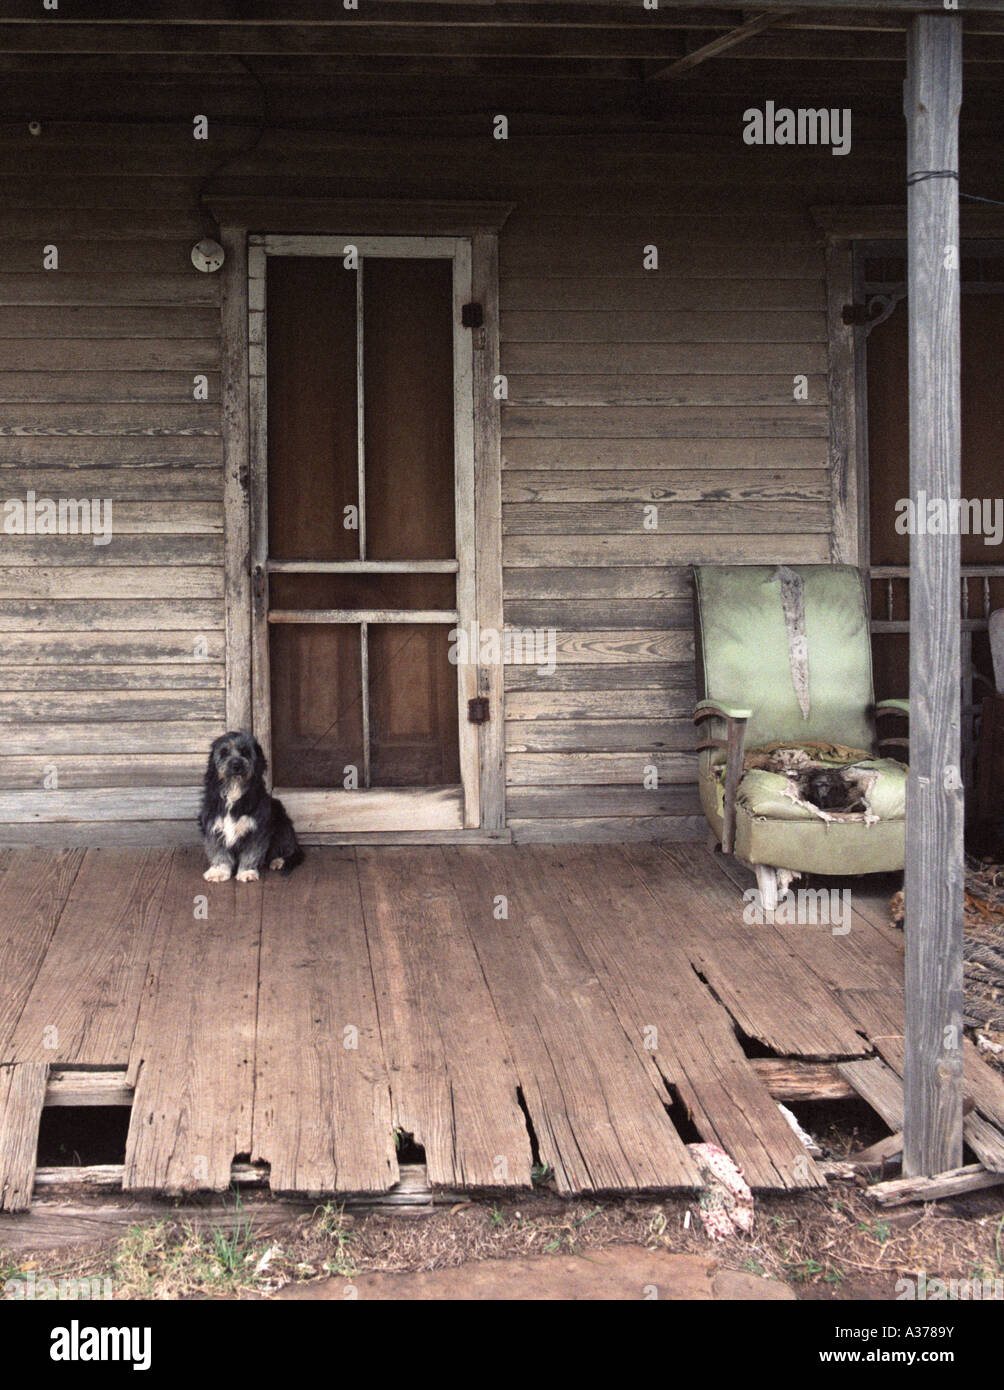 Guard Dog At Front Door Of A Dilapidated Old House Stock Photo